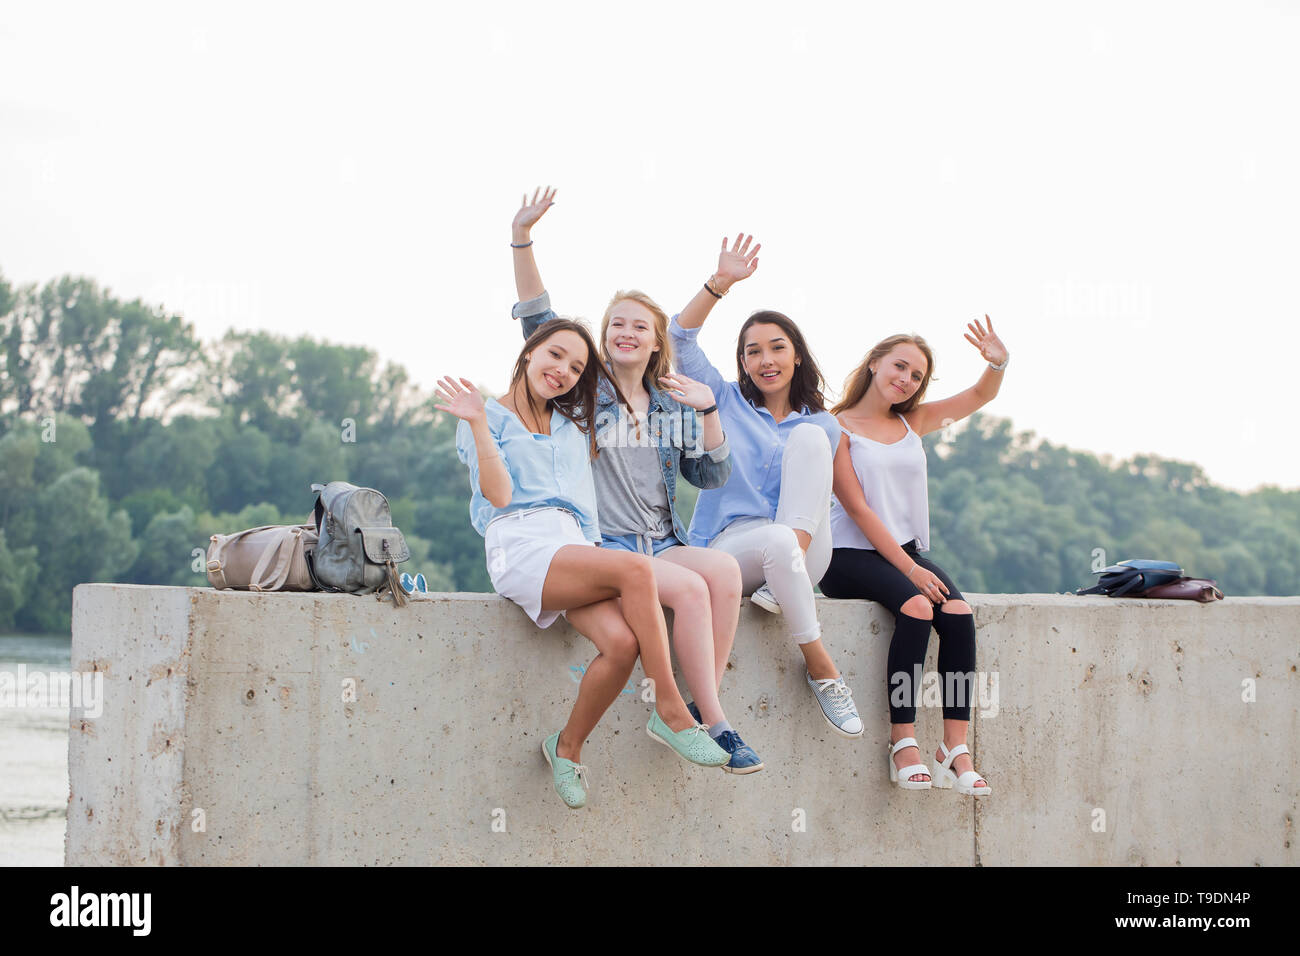 Happy female Friends Having Fun On Weekend, On Picnic Outdoors. Young Smiling People Sitting on concrete border and looking at camera - Stock Image